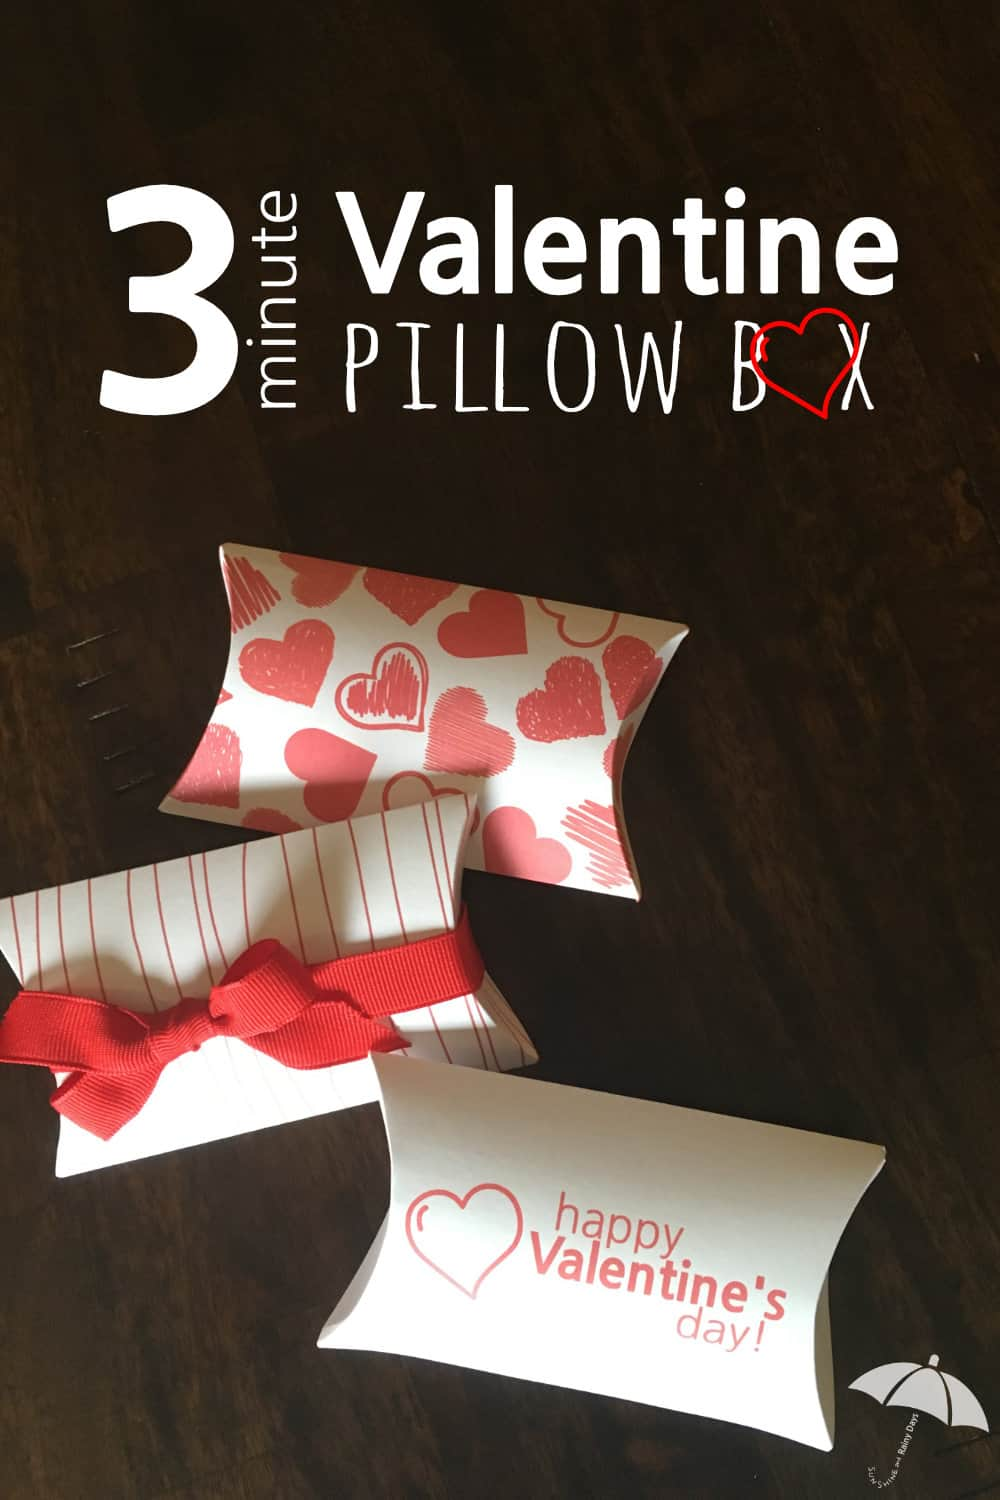 printable valentine pillow boxes - sunshine and rainy days